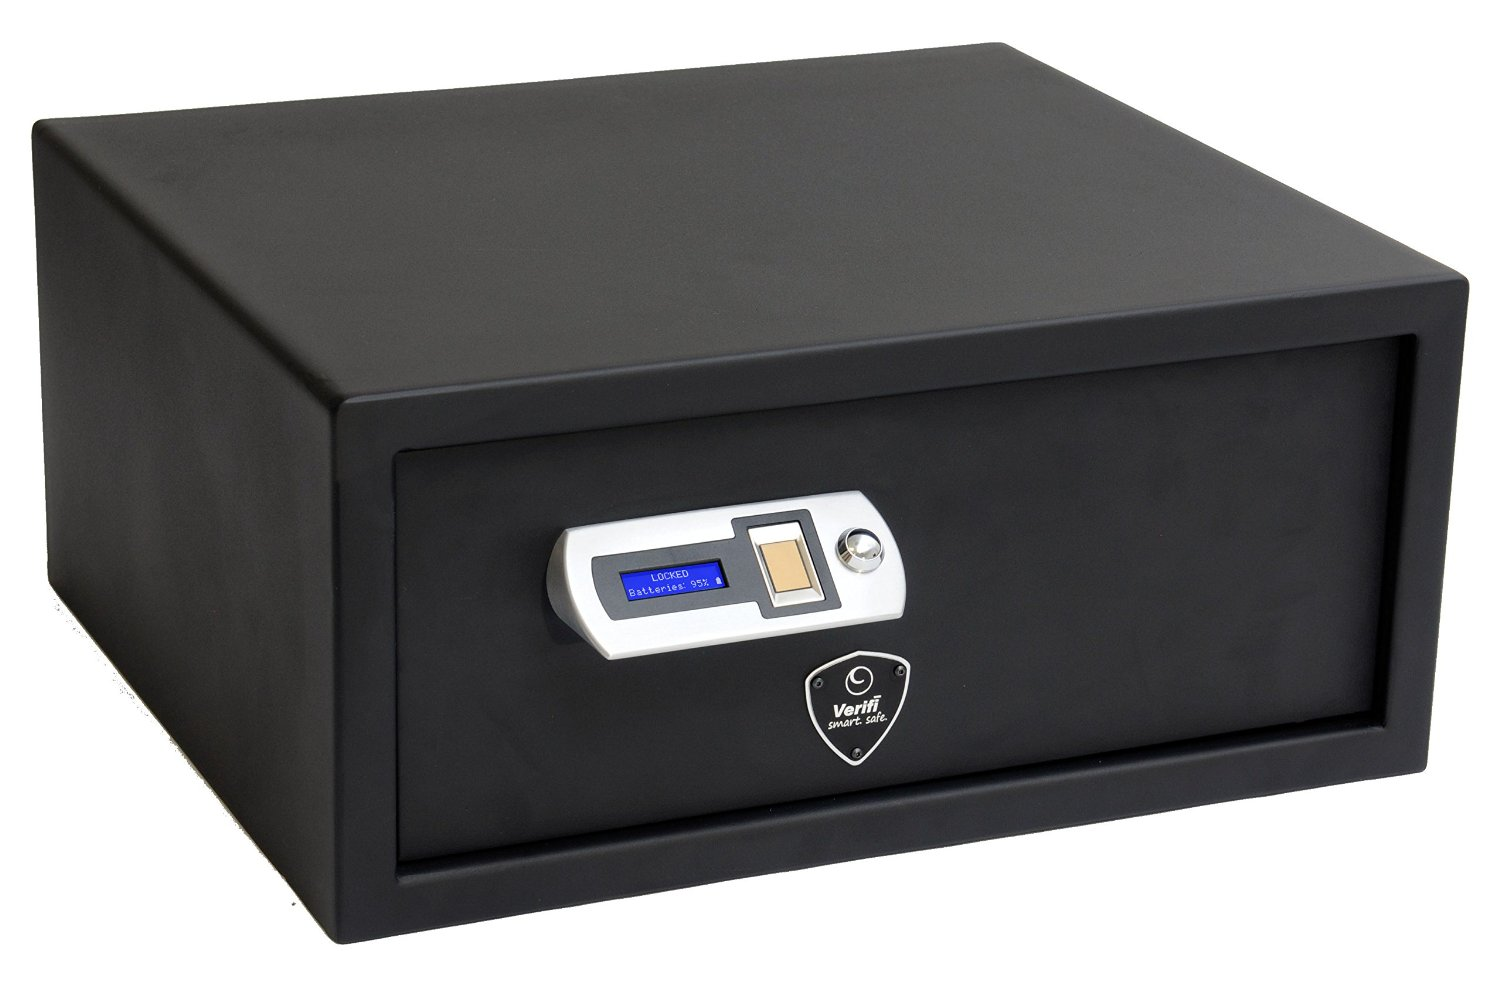 the best biometric handgun safe? the Verifi Smart Safe is pictured here.